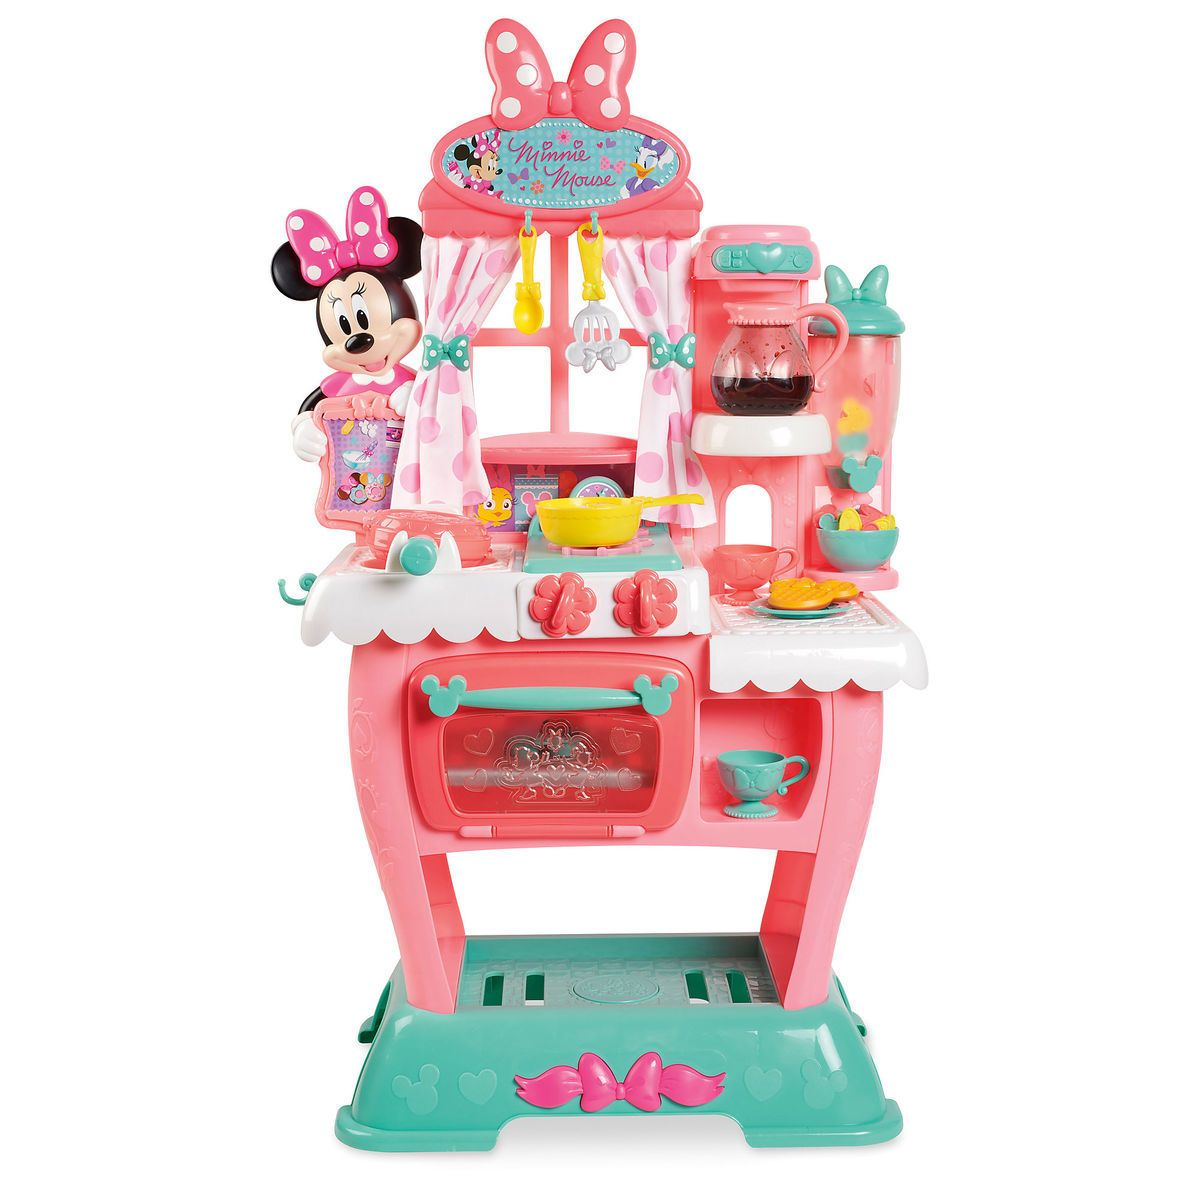 Minnie Mouse Brunch Café Playset That Little Coffee Pot Is Too Cute Kids Toy Shop Minnie Mouse Toys Little Girl Toys